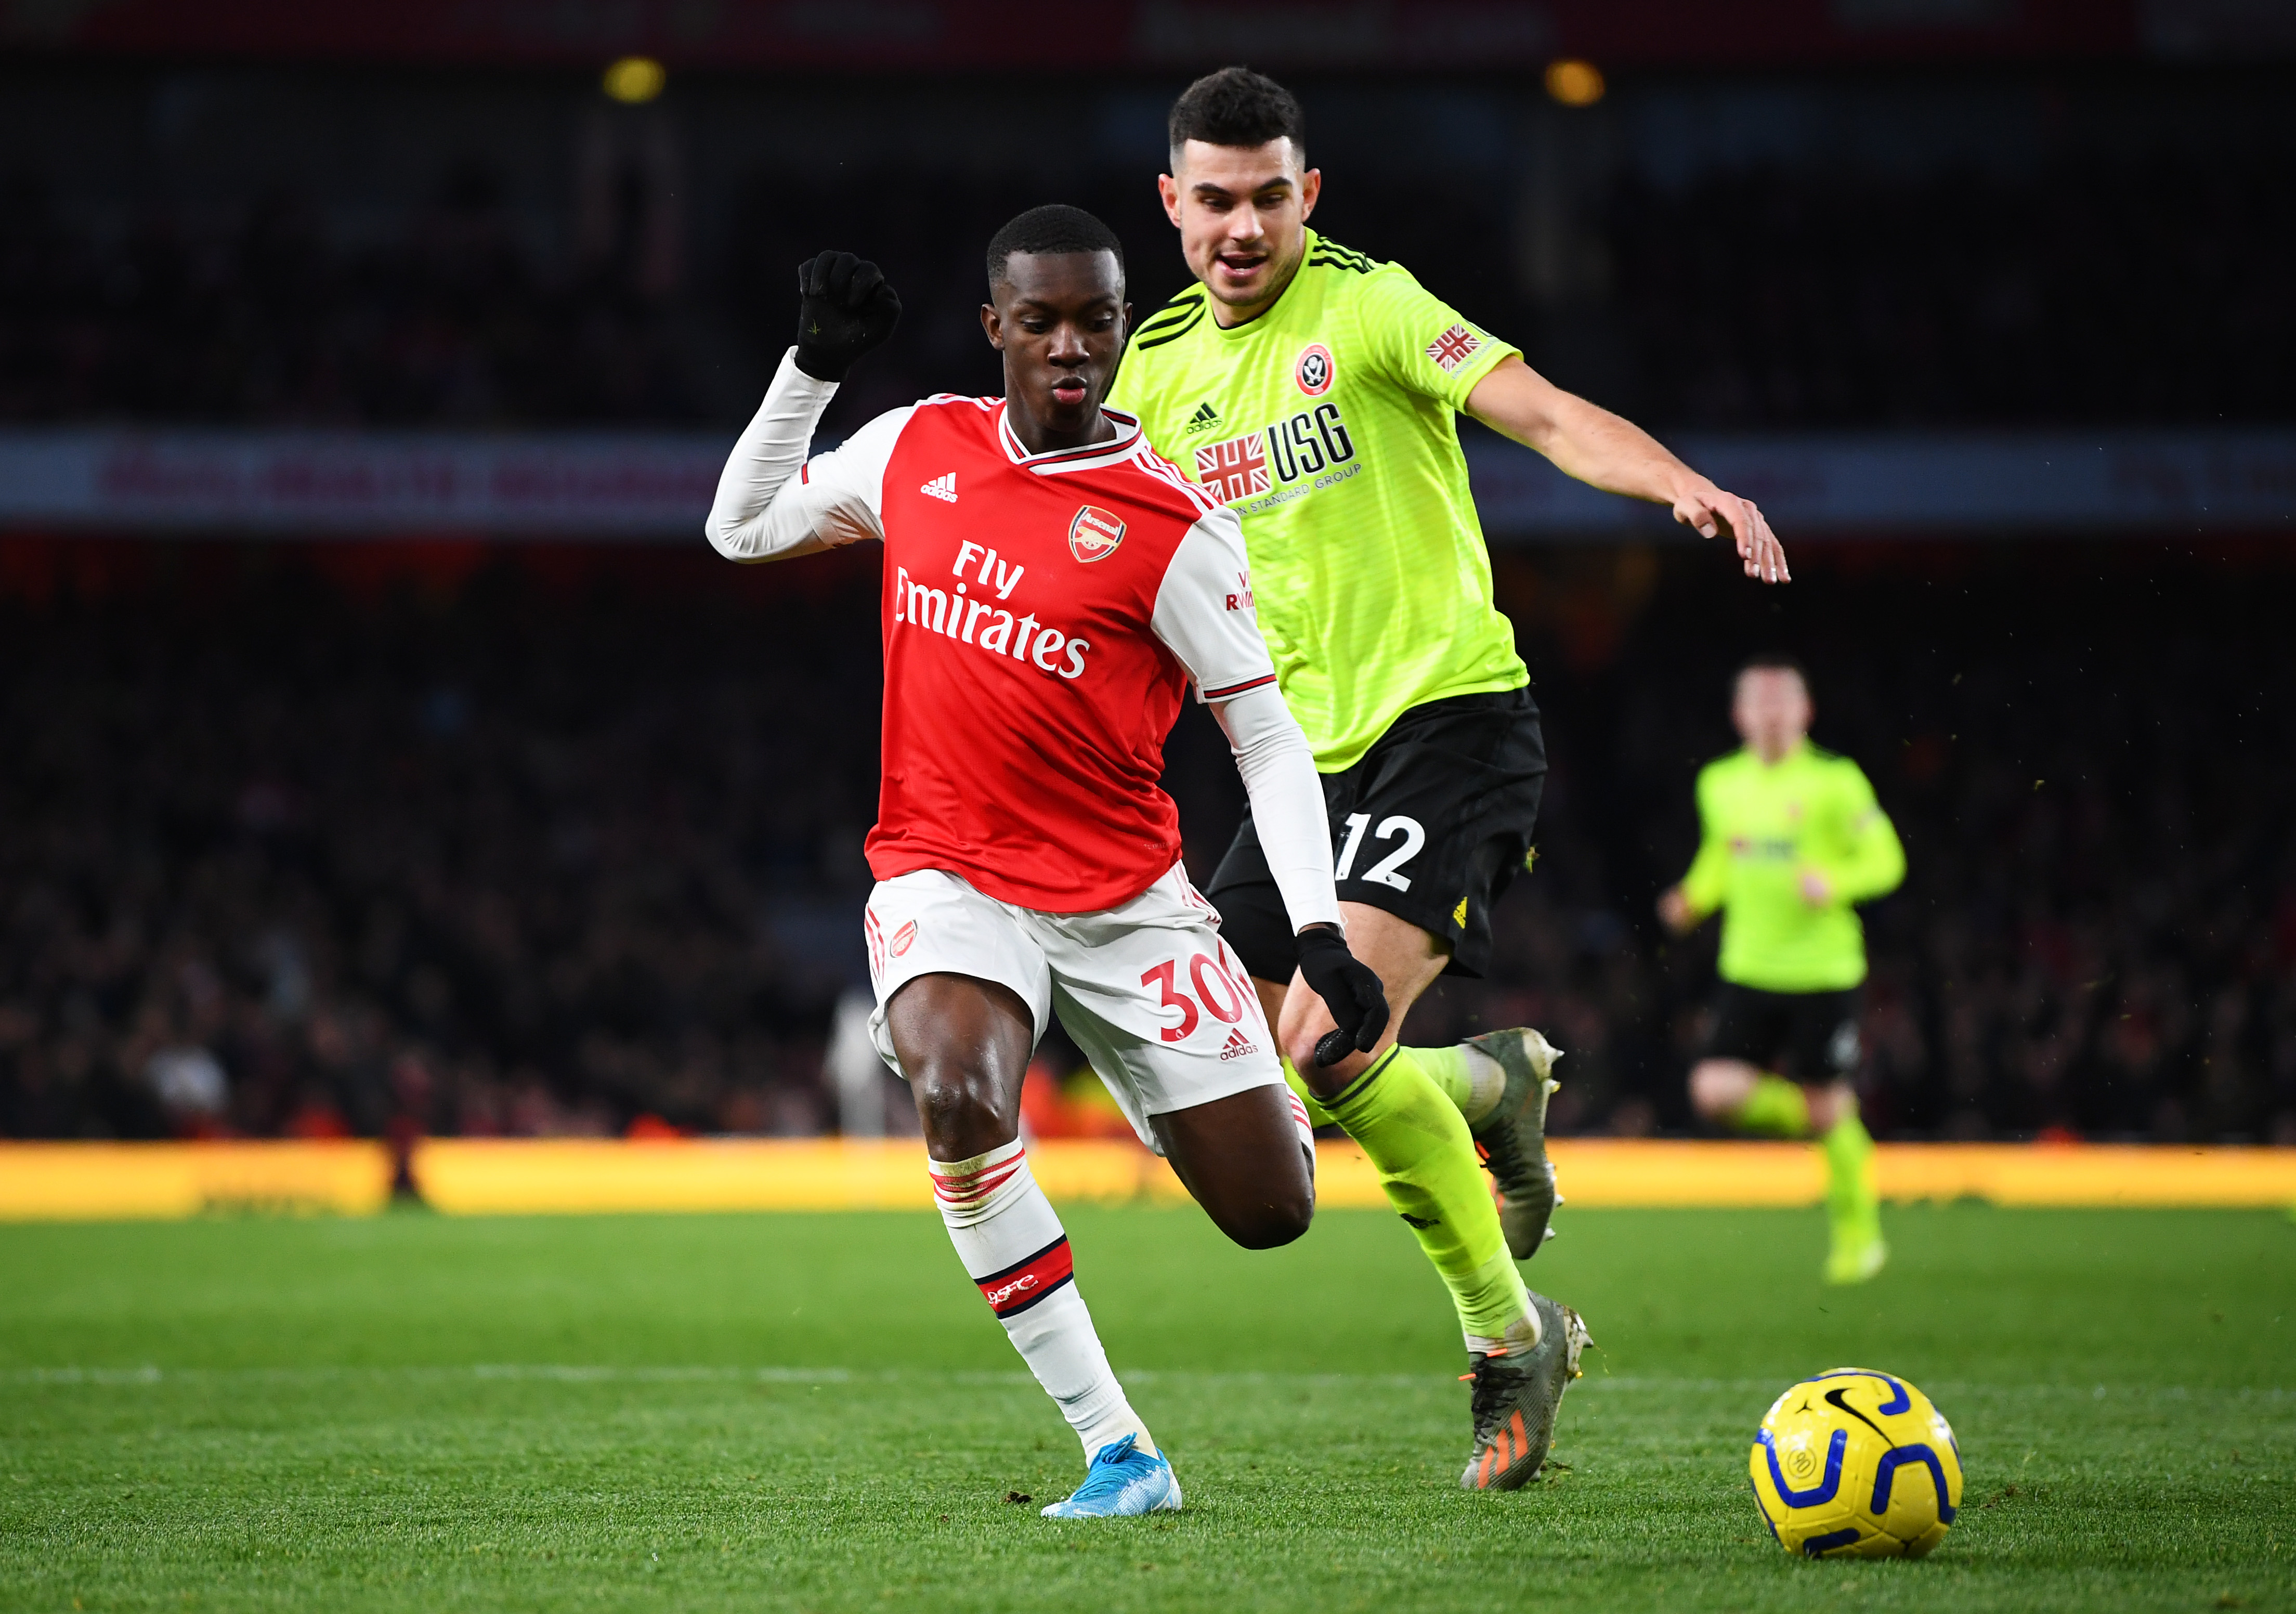 Nketiah will be looking to make a strong impression (Photo by Clive Mason/Getty Images)